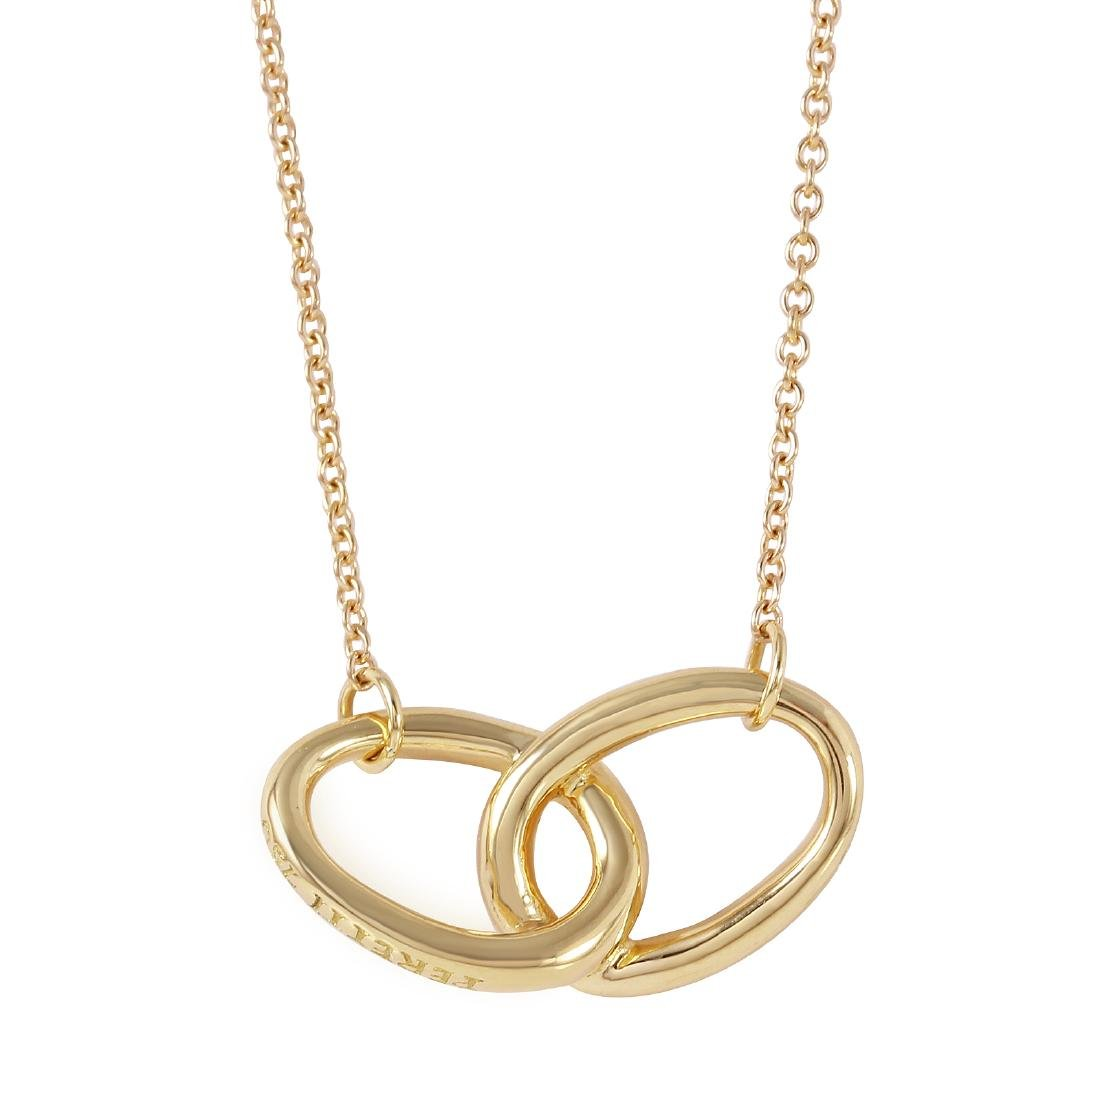 ELSA PERETTI TIFFANY & CO. 18KT Gold Necklace